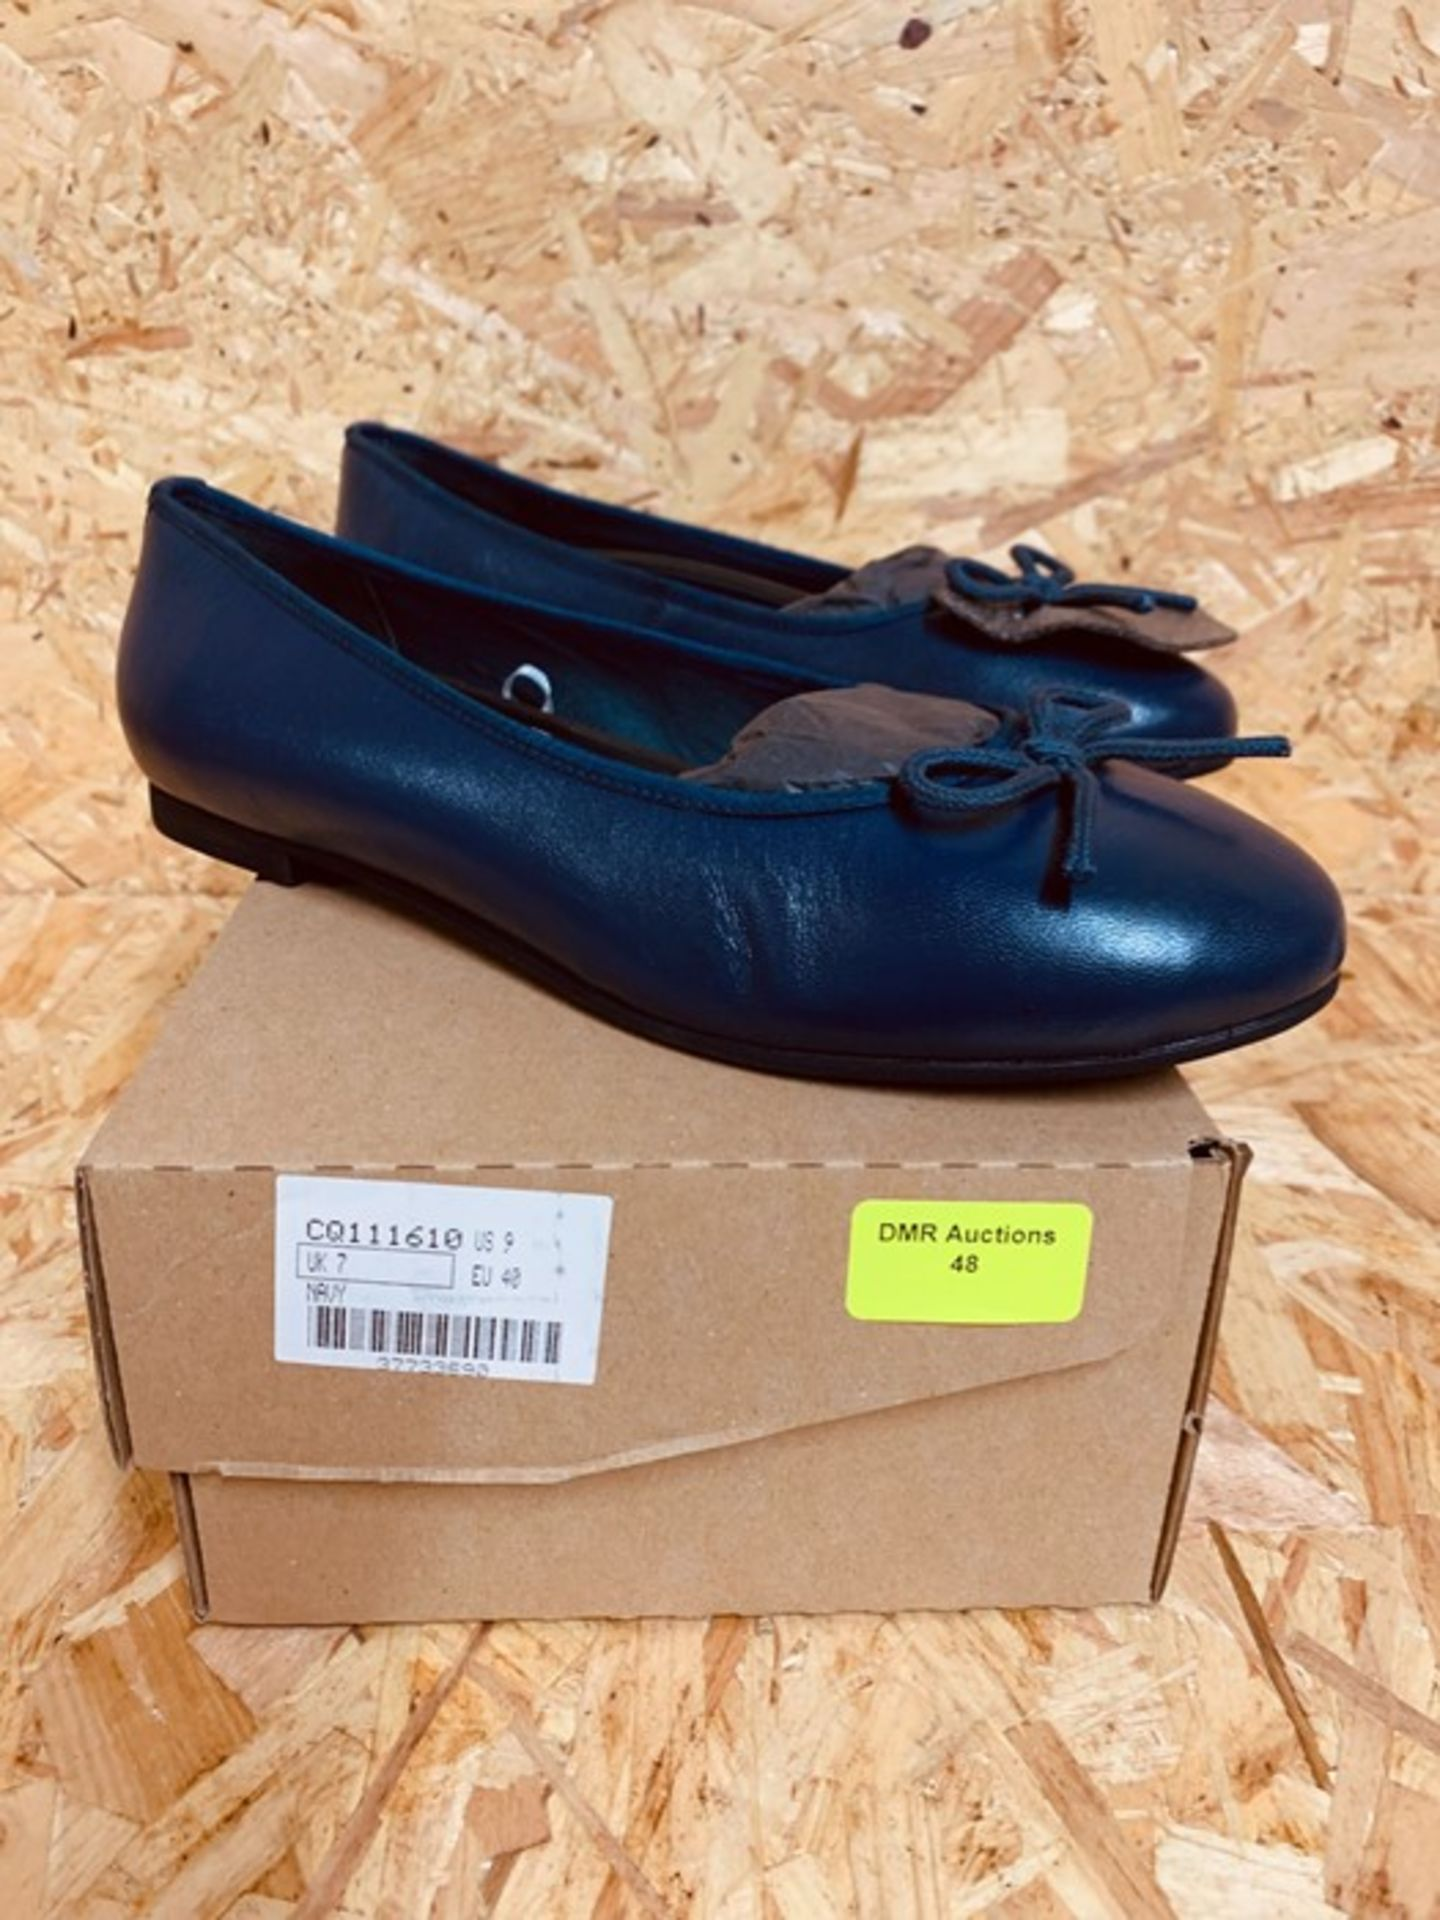 HEAVENLY SOLES LADIES LEATHER COURT SHOES - UK SIZE 7/NAVY